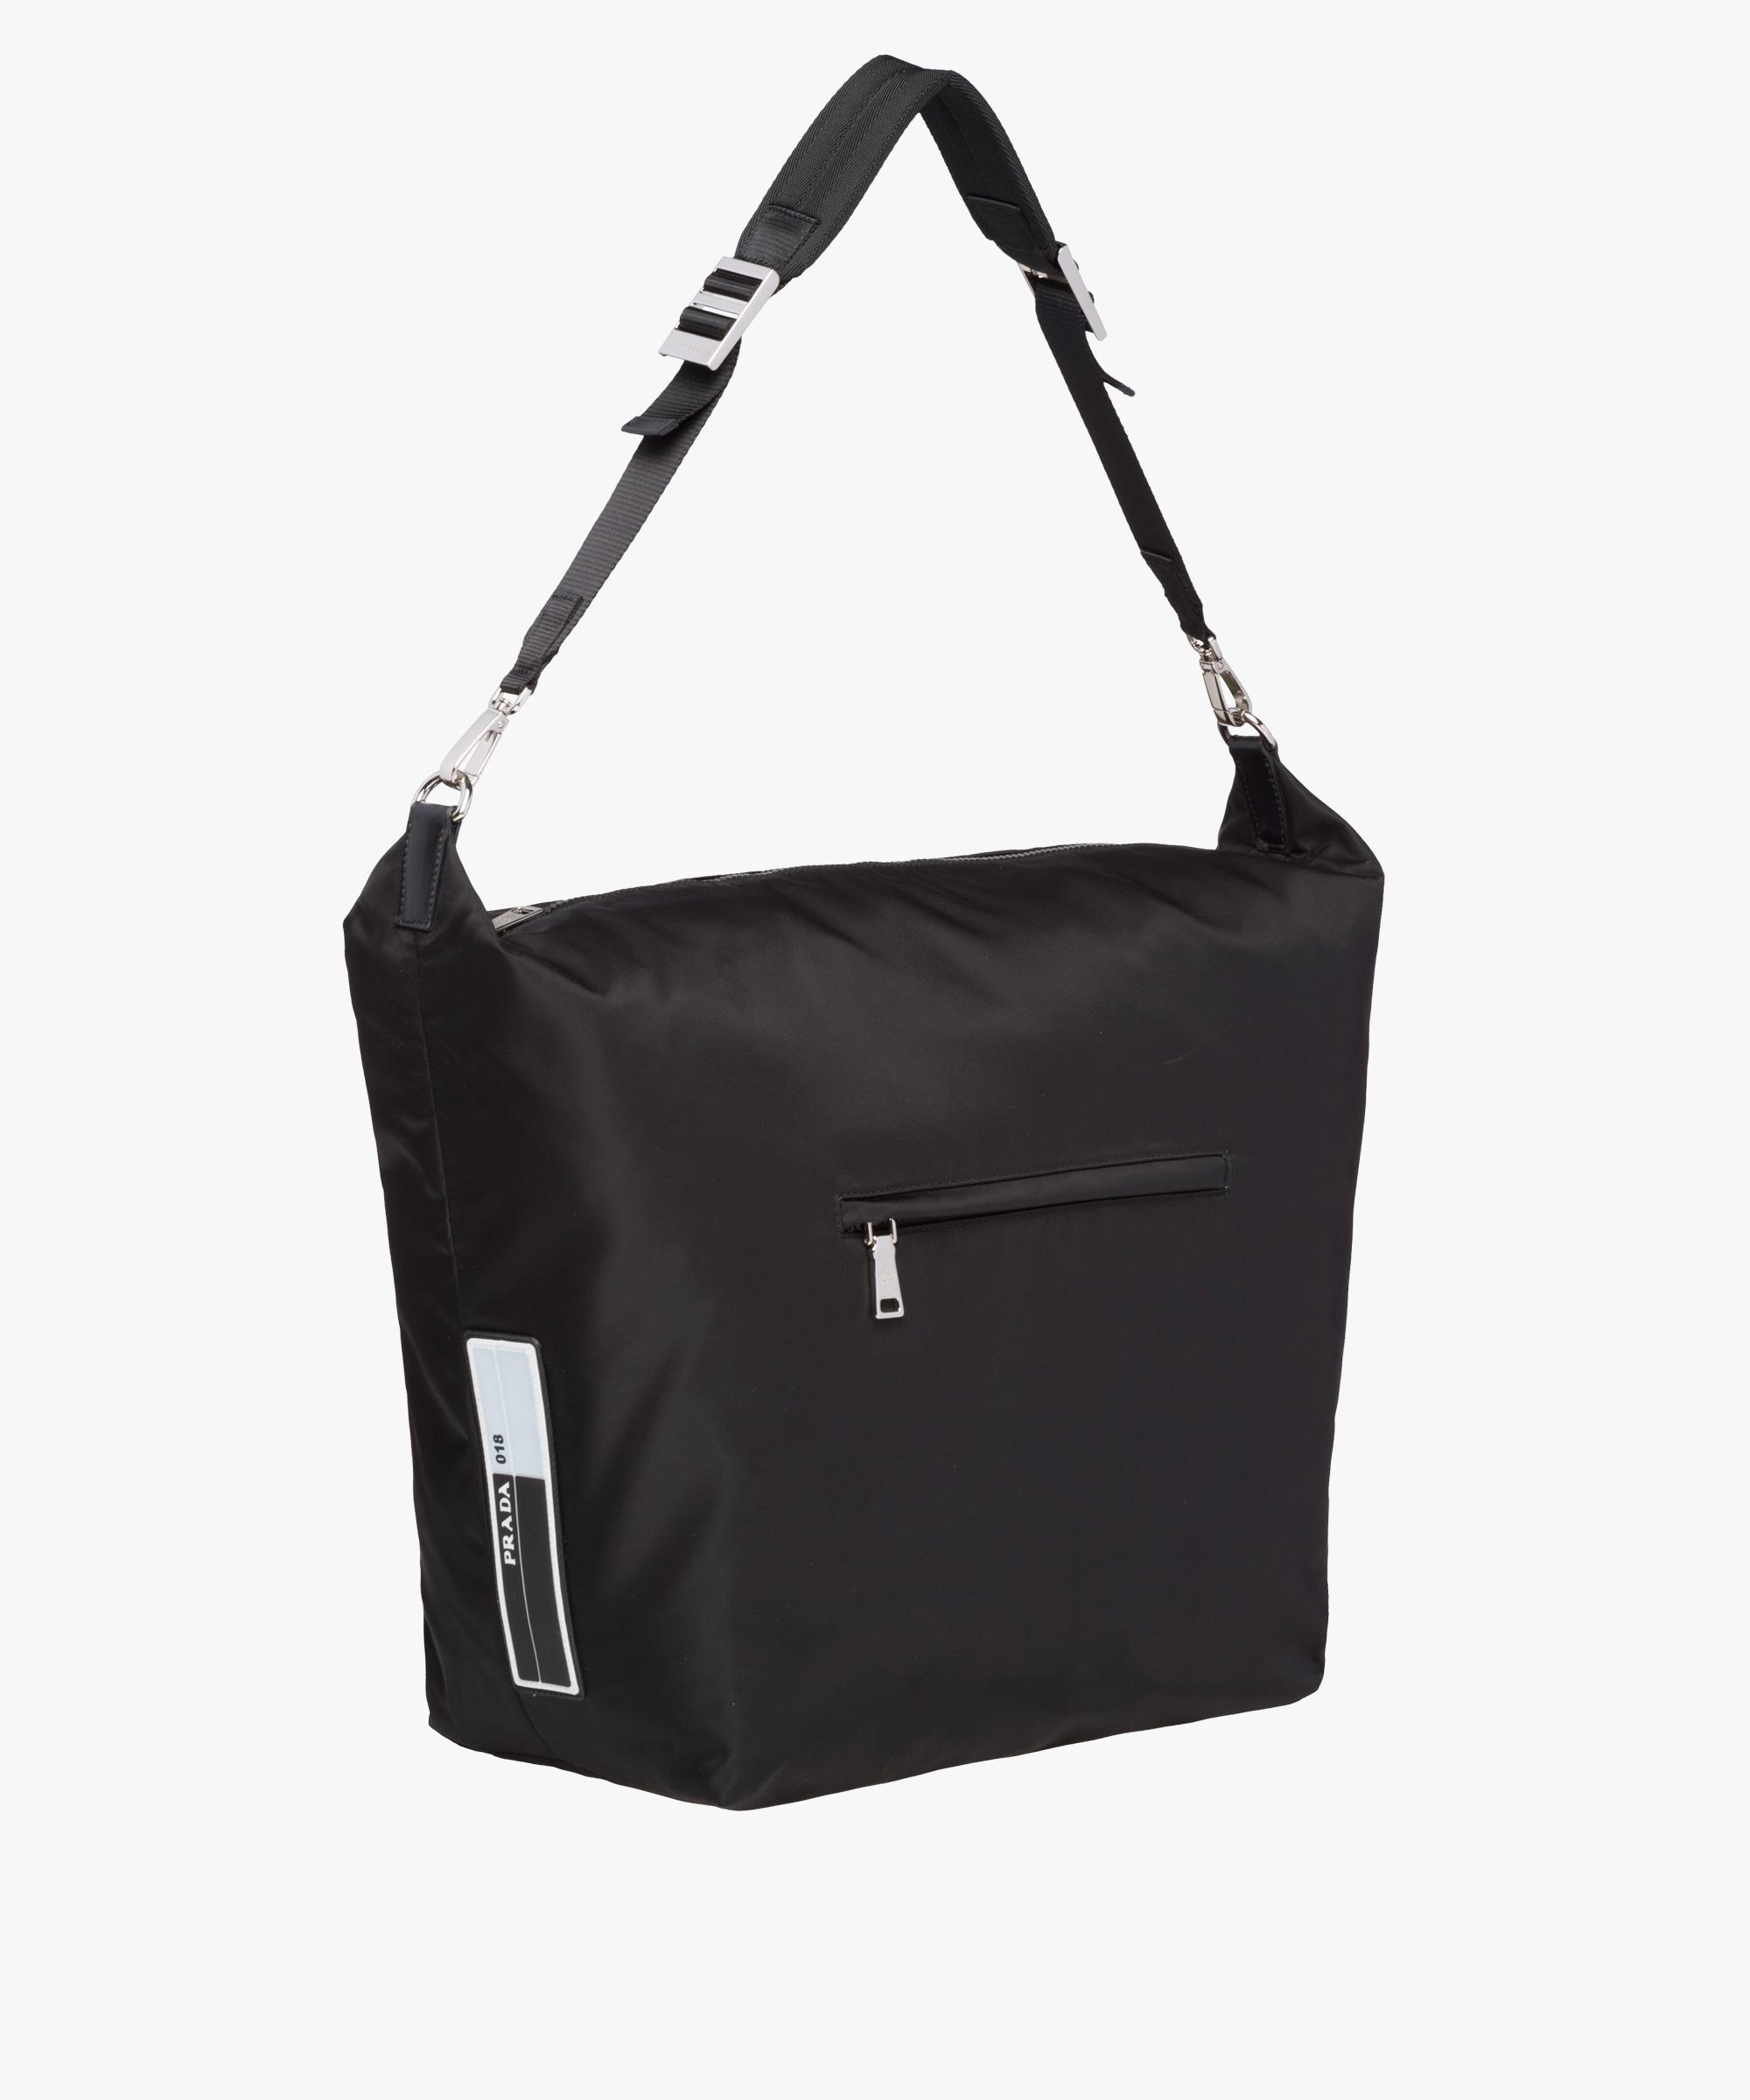 202aba1a9a11be ... coupon for lyst prada technical fabric hobo bag with shoulder strap in  black c8772 4fd3d